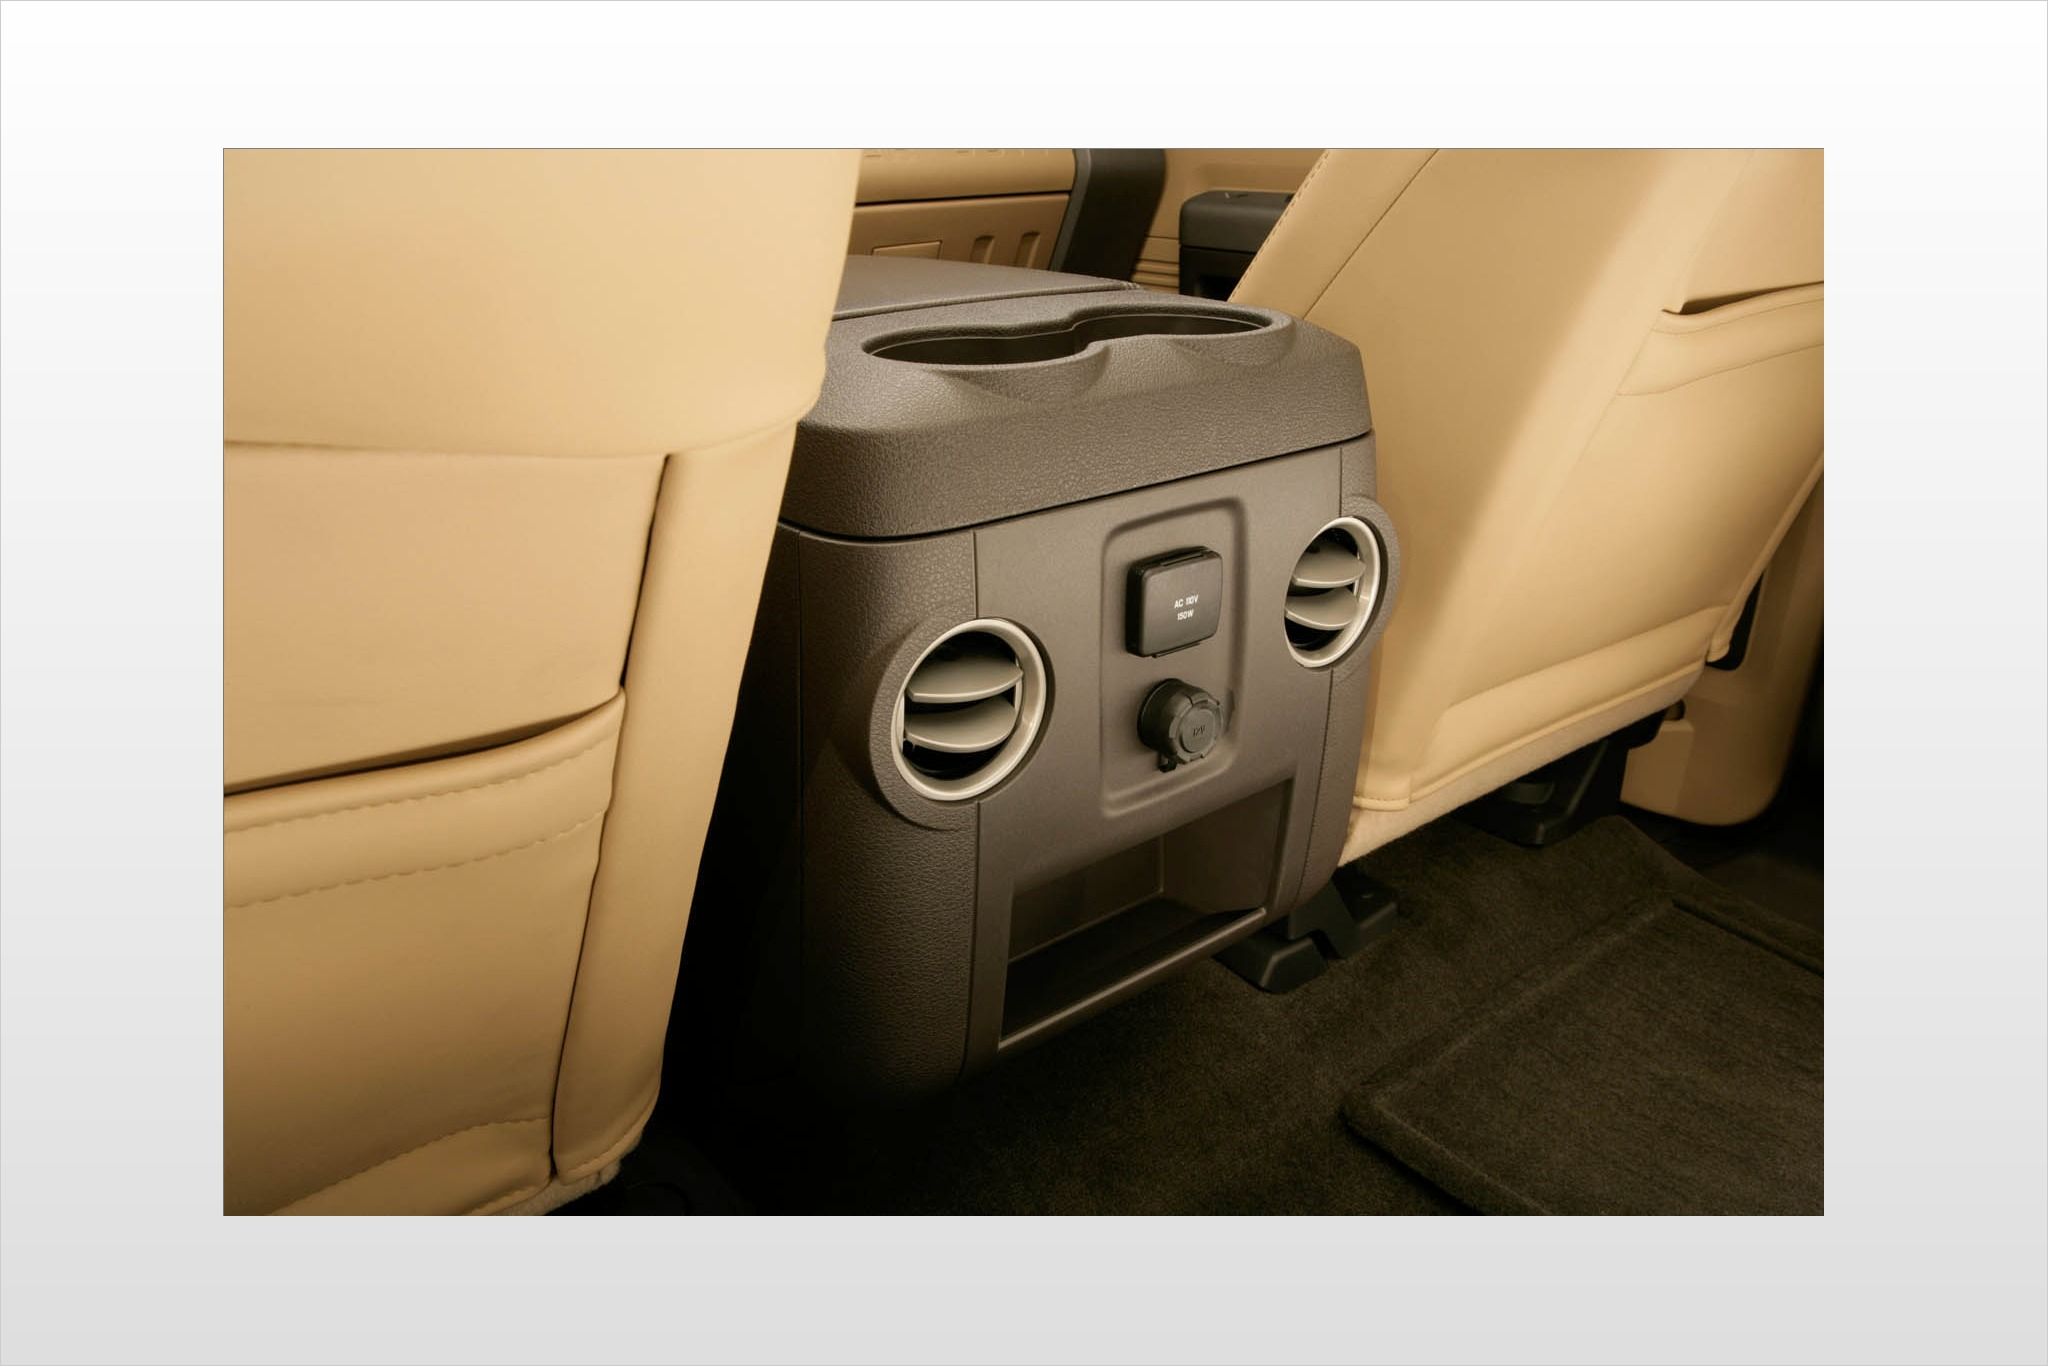 2012 Ford F-450 Super Dut interior #7